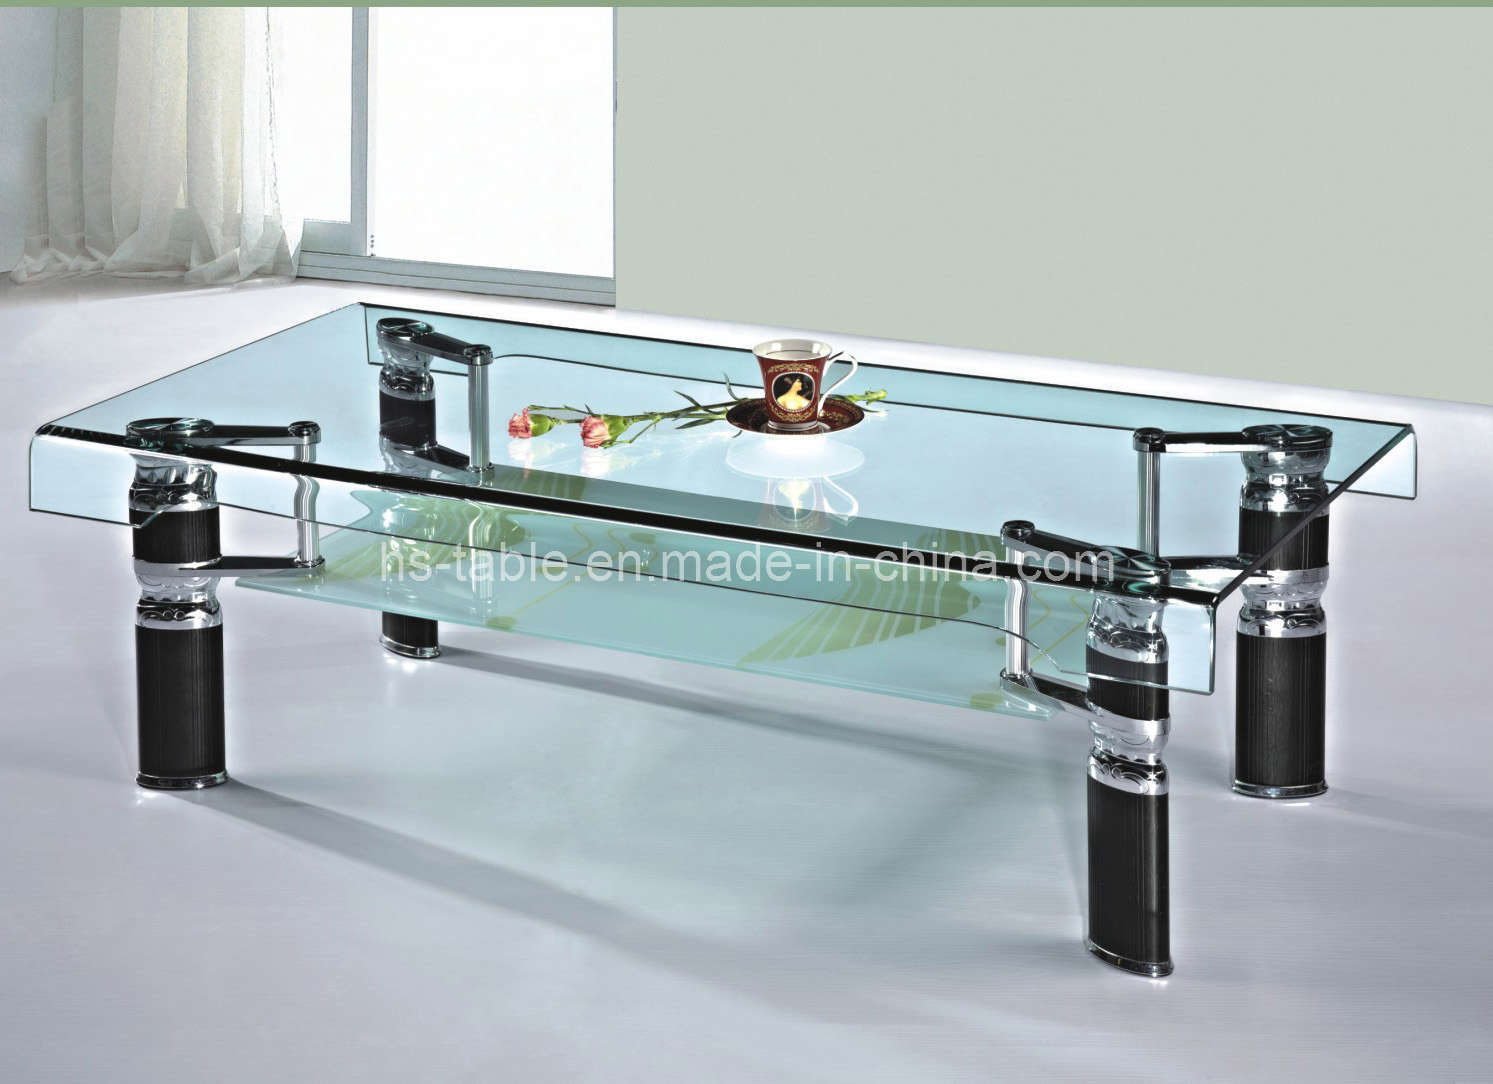 Glass Living Room Table Of China Bended Glass Coffee Table Living Room Furniture